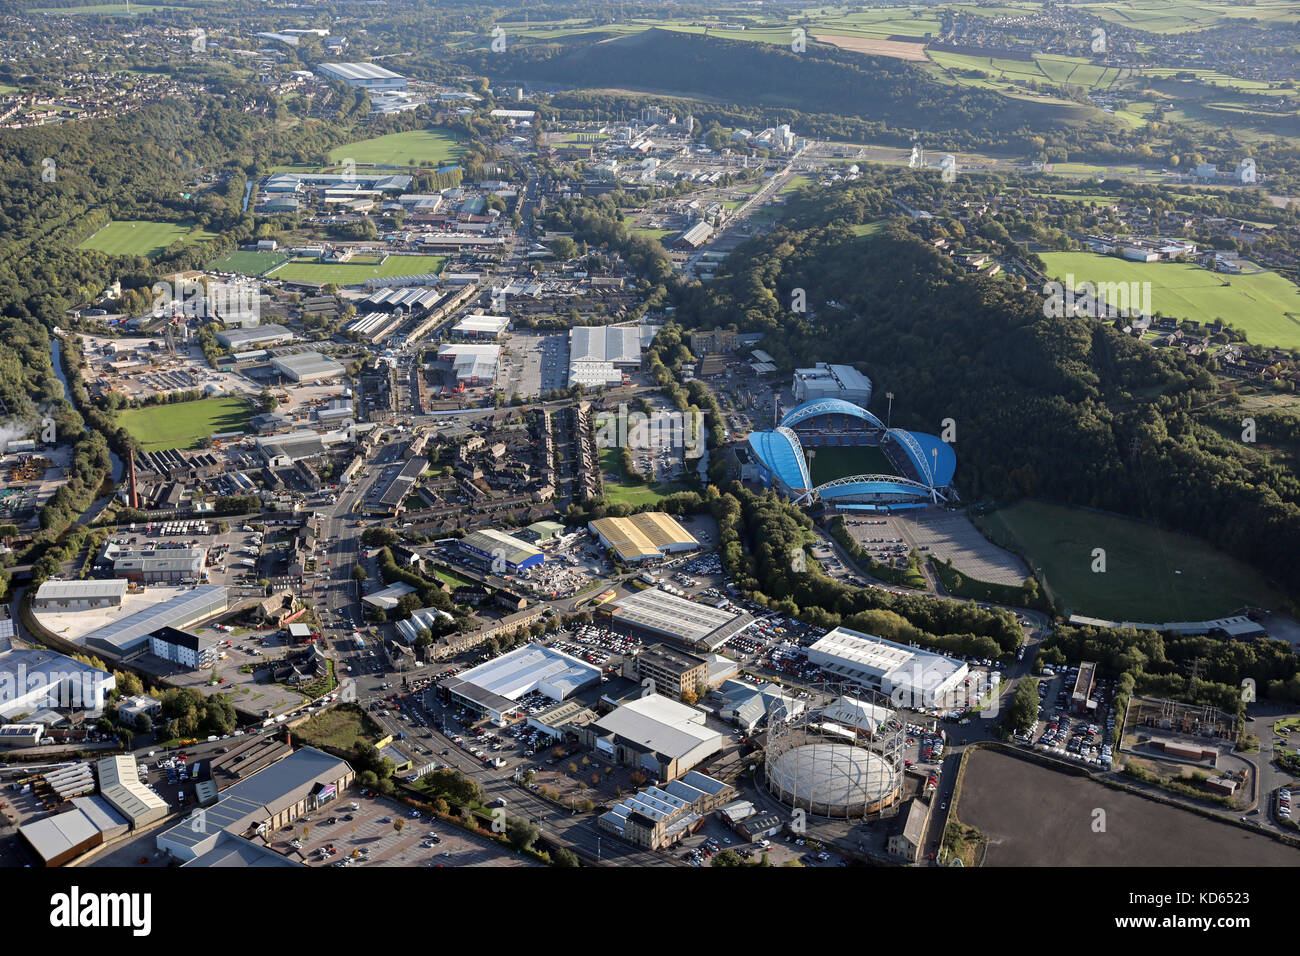 aerial view of the Leeds Road, River Colne, area of East Huddersfield, West Yorkshire, UK - Stock Image